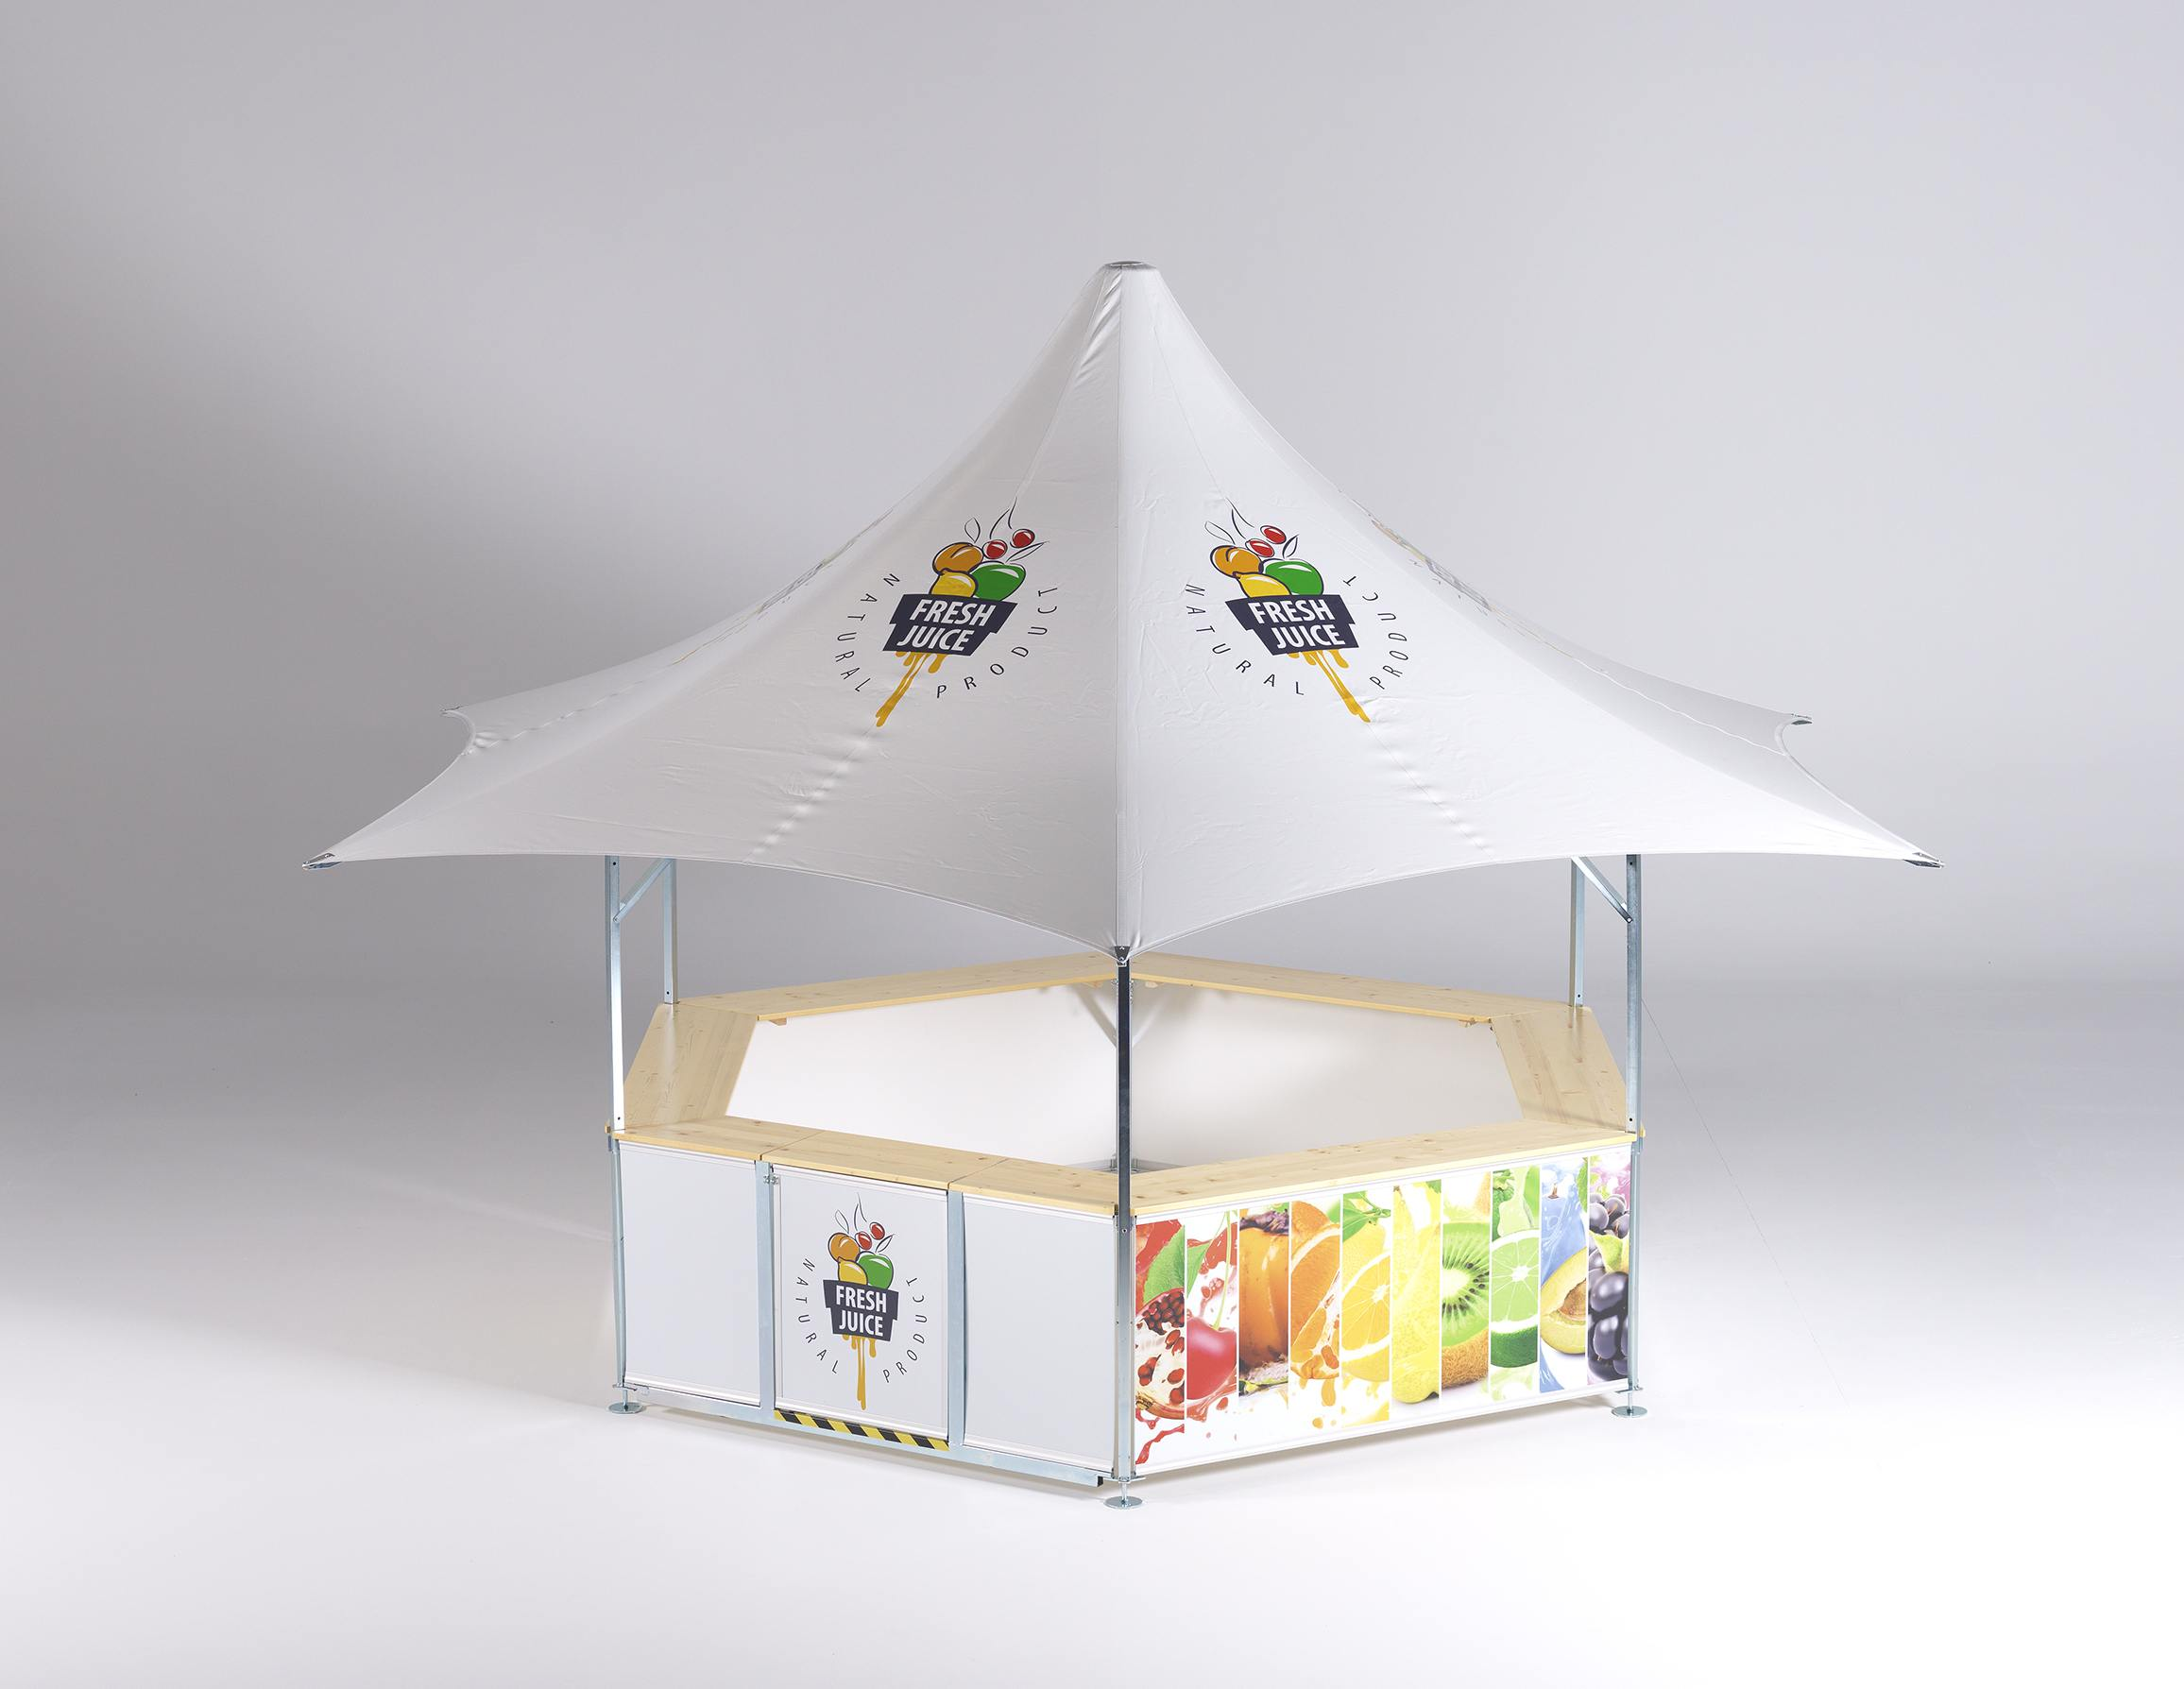 <p>Tents &amp; Marquees.</p> <p>Star Pavilion.</p> <p>Ideally suited as a Champagne Bar or Craft Ale Bar and other food and drink options.</p>